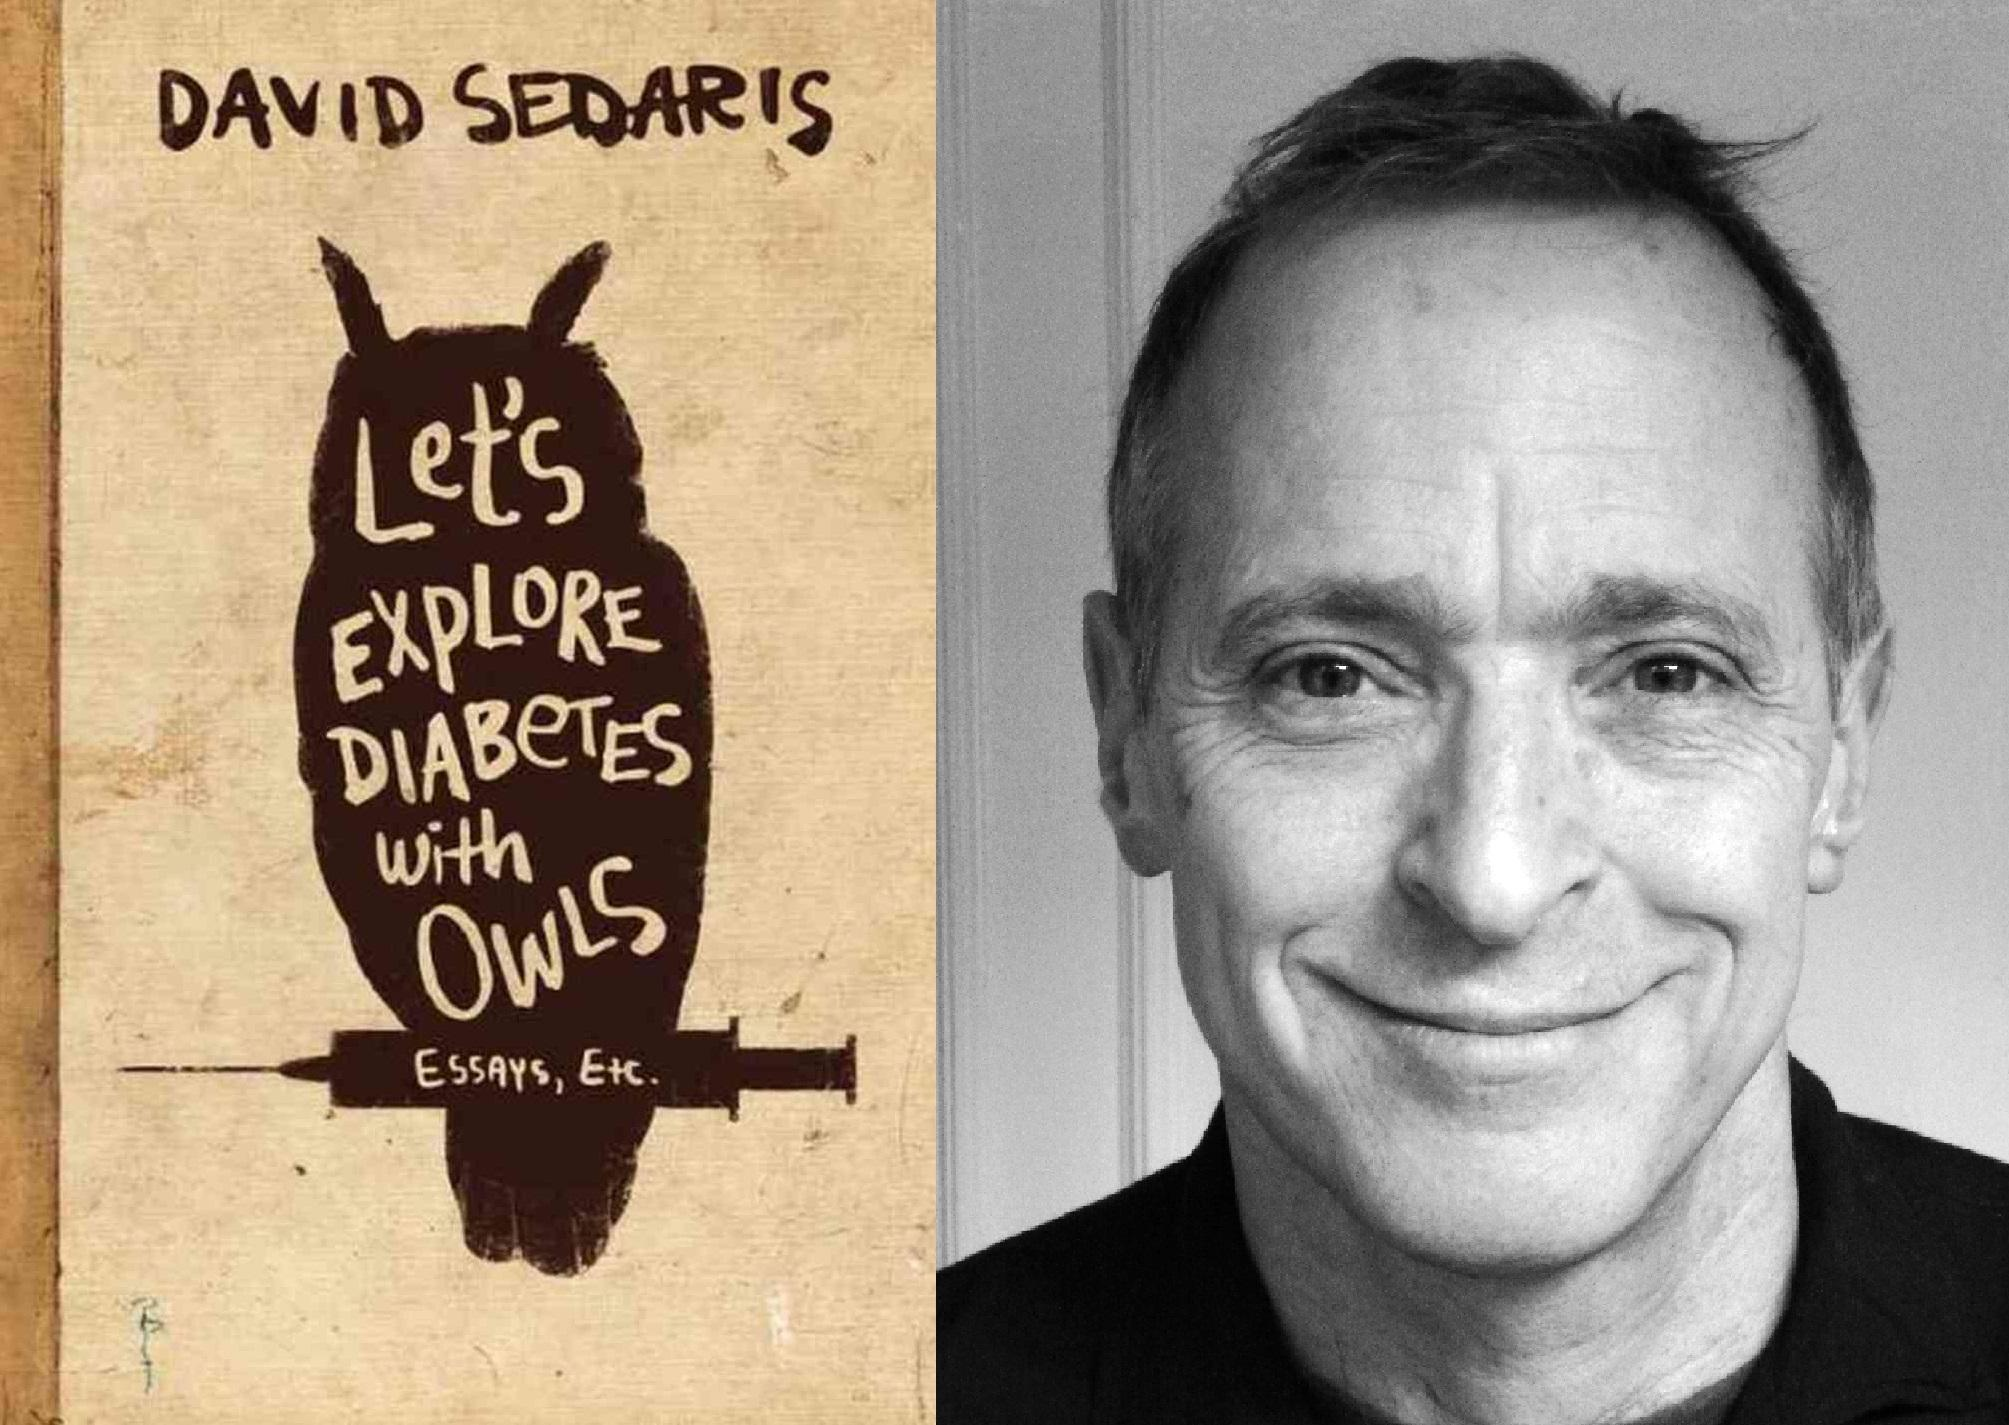 david sedaris jimmy fallon